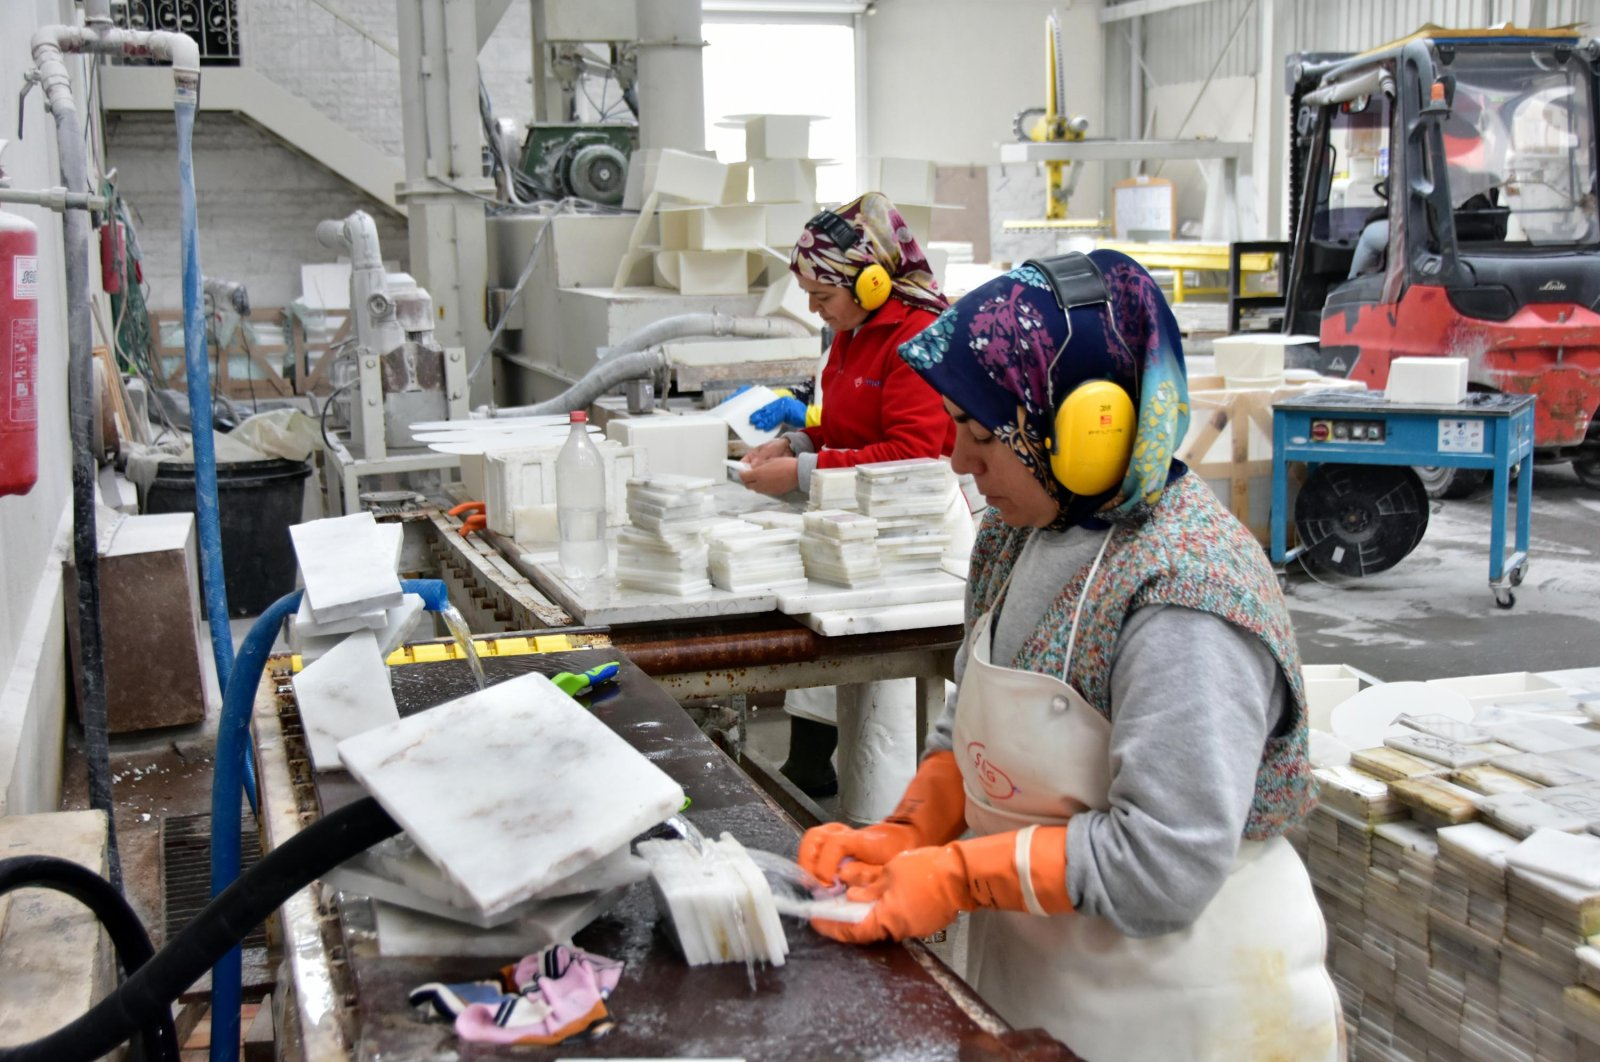 Women working at a marble factory, Muğla, Mar. 4, 2020. (DHA Photo)